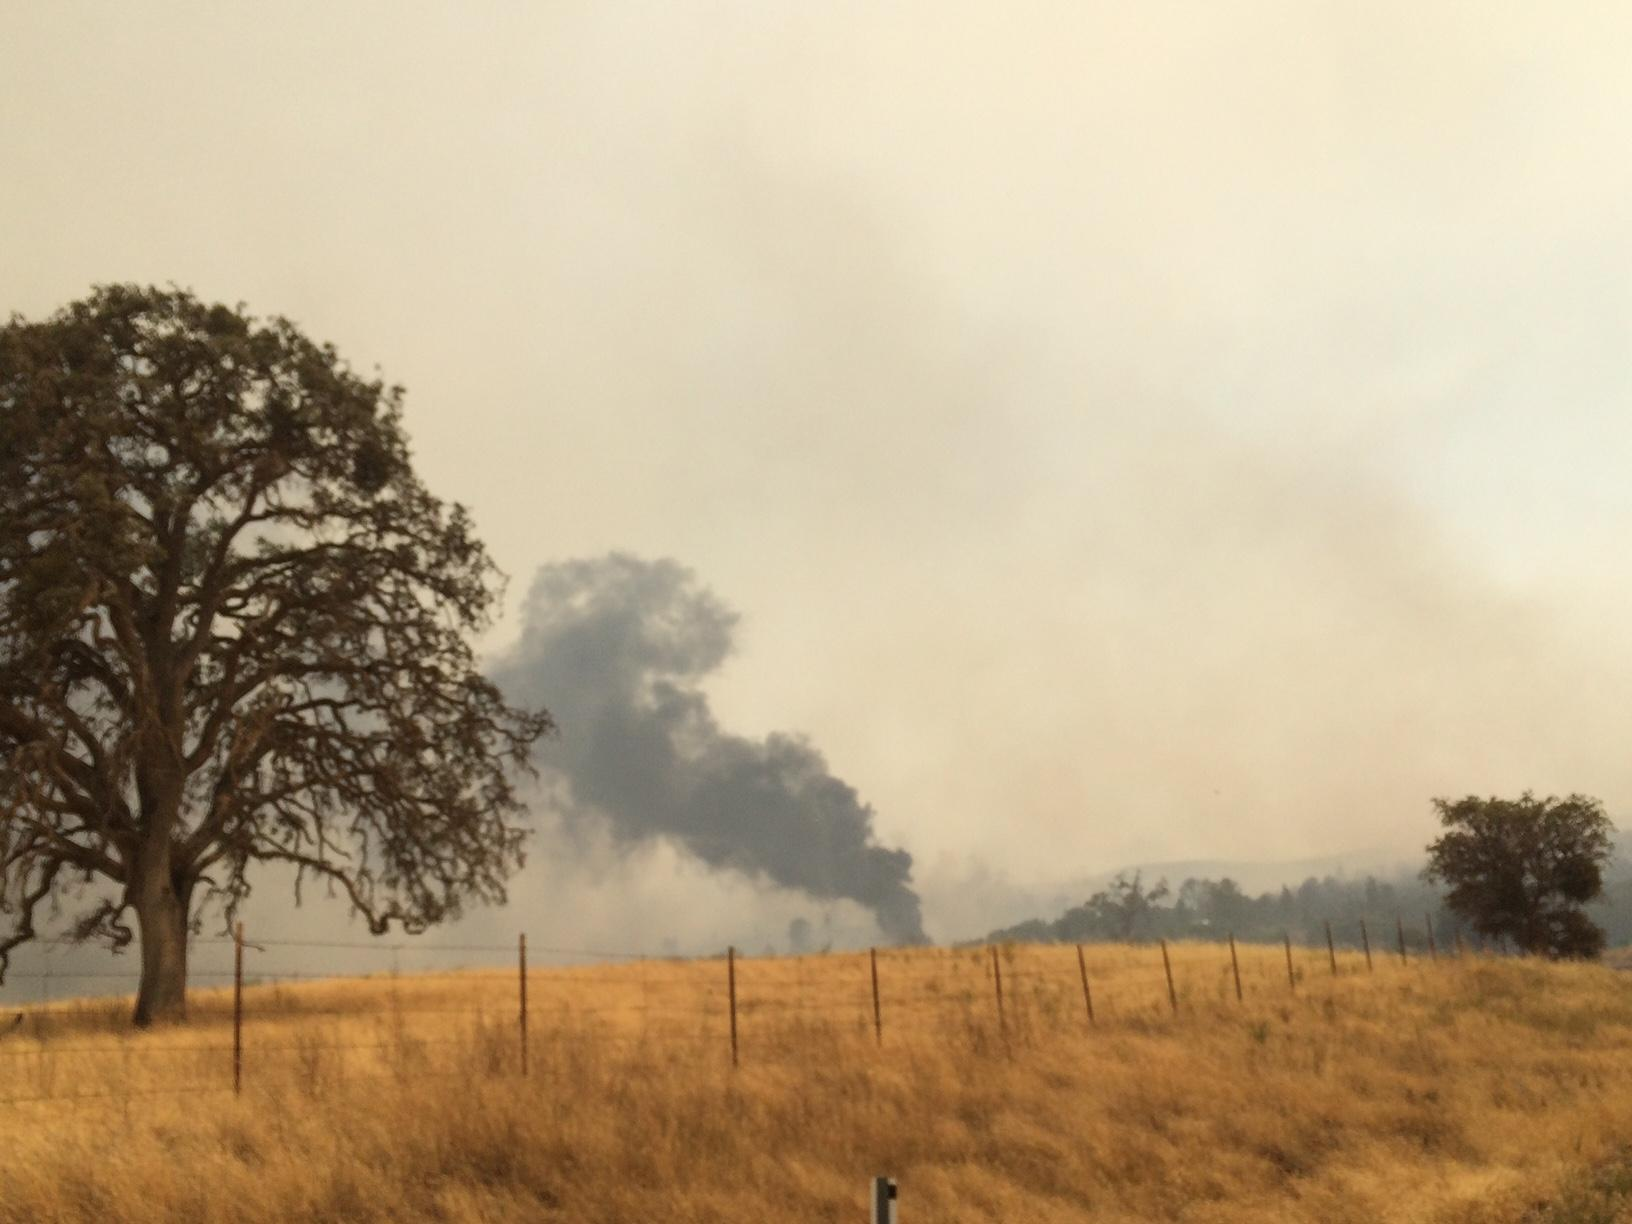 Detwiler Fire causes decline in air quality